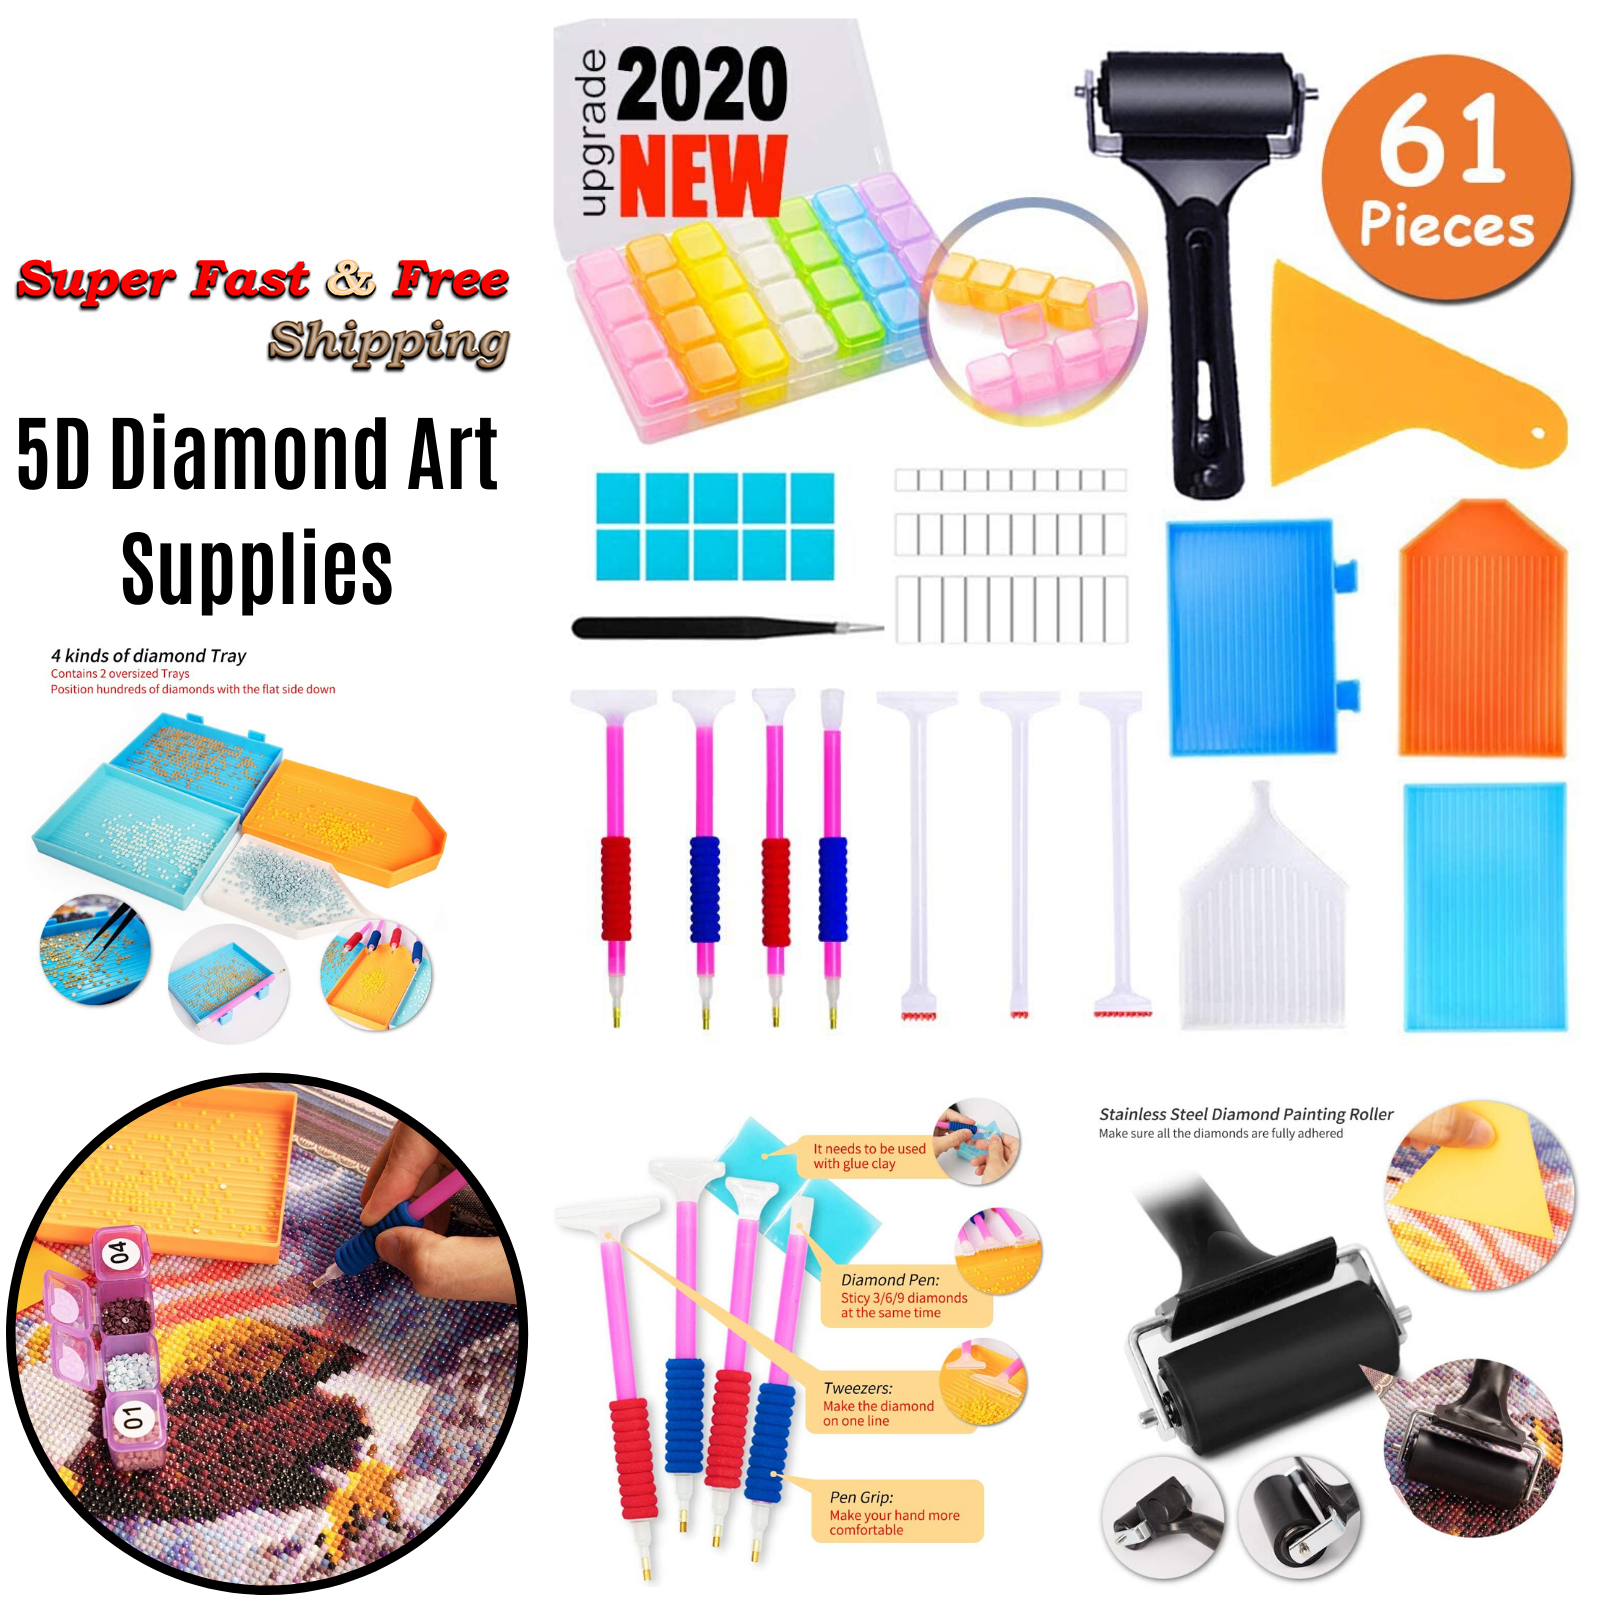 Tupalizy 100PCS 5D Diamond Painting Glue Clay with 6PCS 3 Sizes Diamond Painting Pens Cross Stitch Tool Set Diamond Painting Wax and Sticky Pens Kits Accessories for Diamond Dots Picture DIY Art Craft